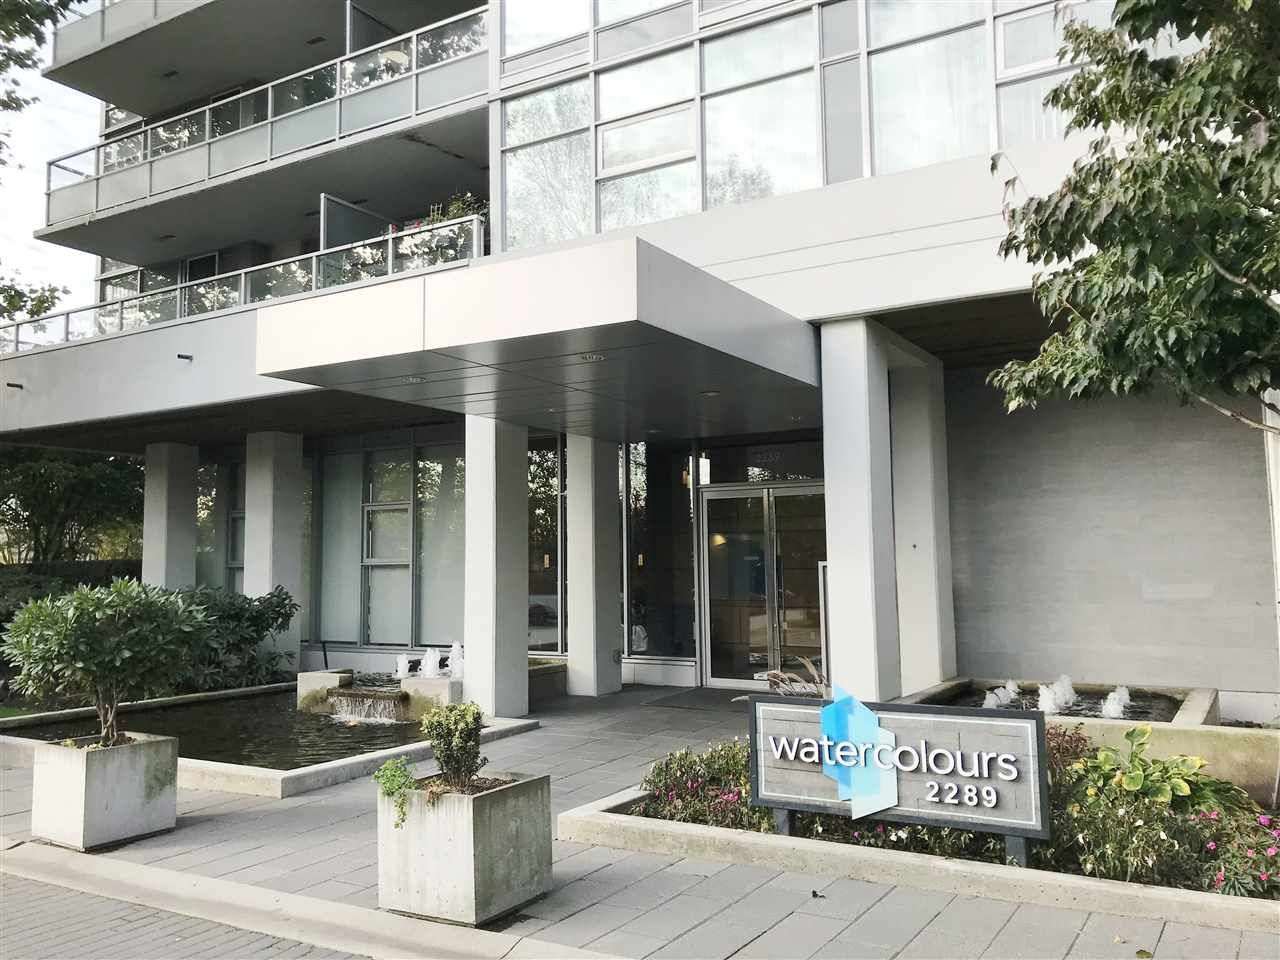 """Main Photo: 2605 2289 YUKON Crescent in Burnaby: Brentwood Park Condo for sale in """"Water colour"""" (Burnaby North)  : MLS®# R2511997"""